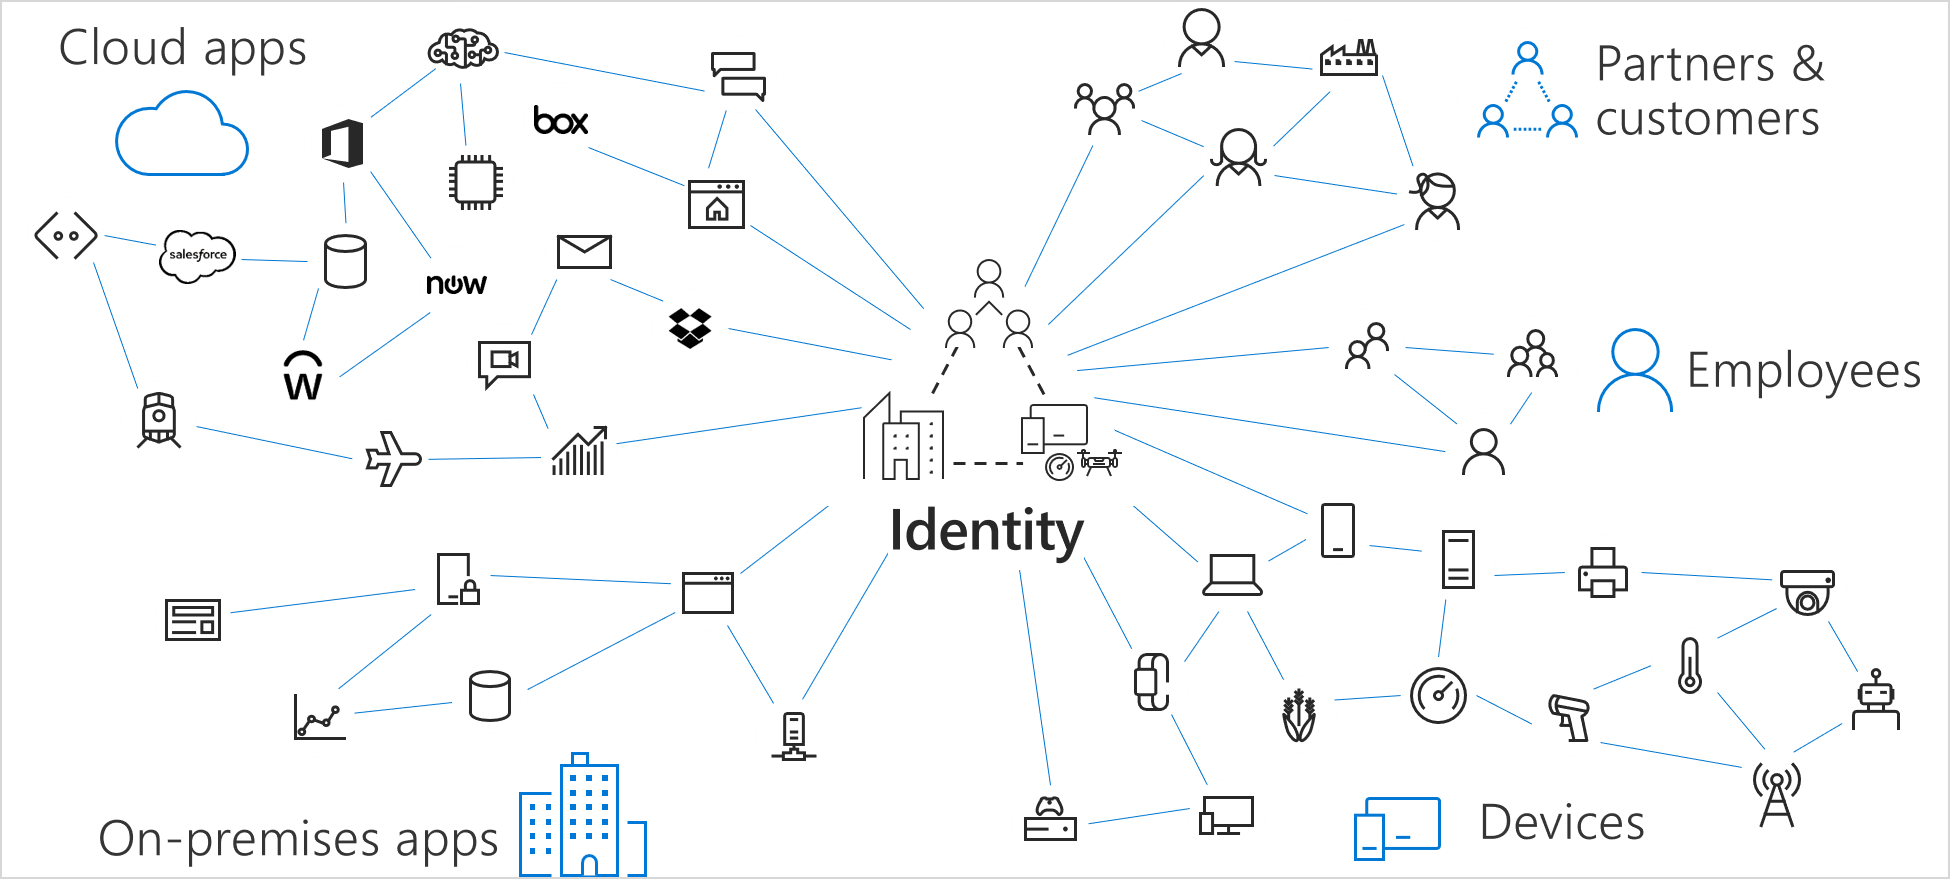 Image showing the control plane of Identity: Cloud apps, Partners and customers, Employees, and On-premises apps.